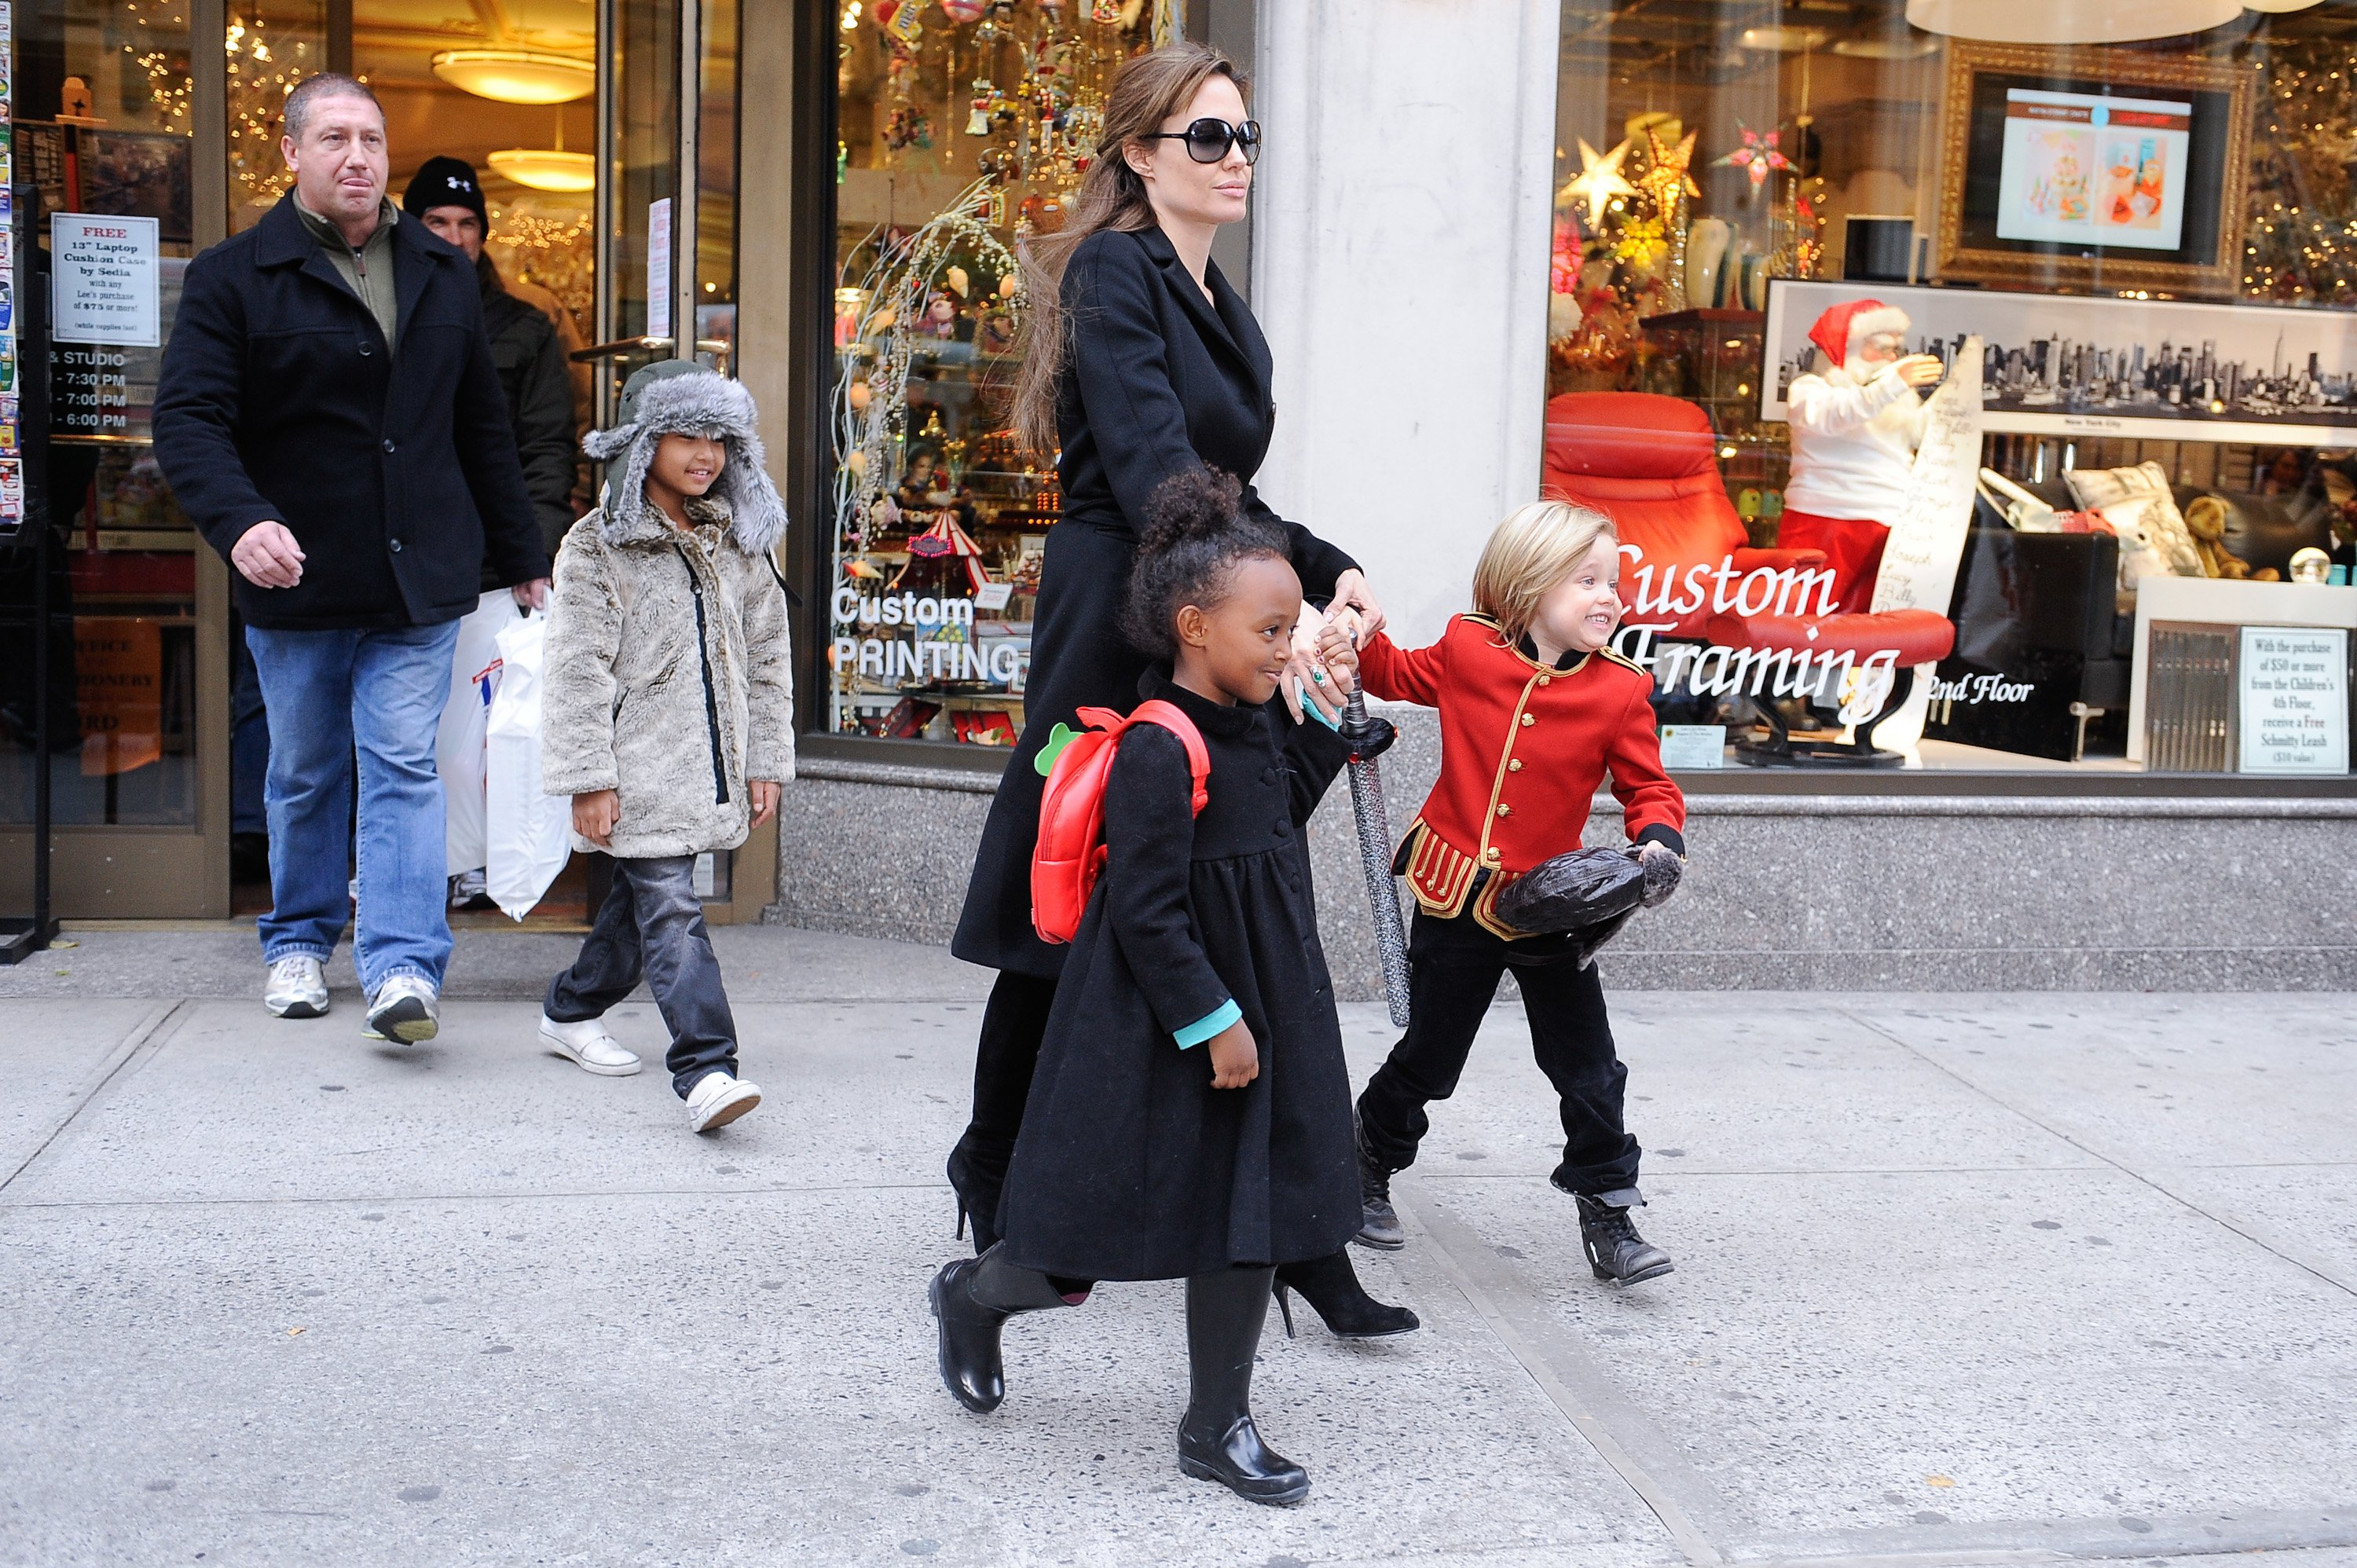 Image Source: Getty Images/Angelina leaving a shop with her kids